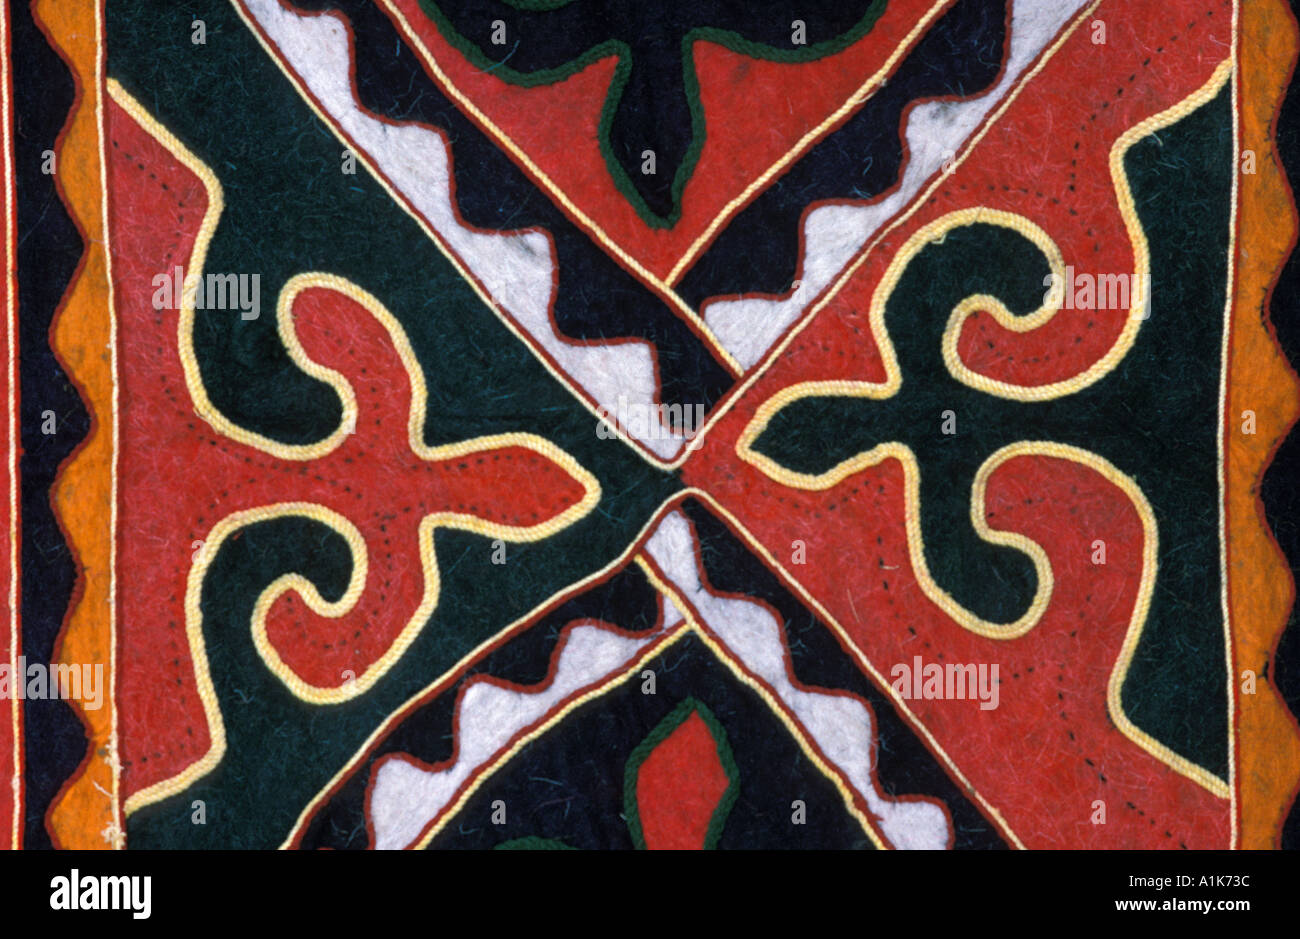 Felt and applique fabric from Xinjiang China Sold in Kashgar and routes along the Karakoram Highway - Stock Image